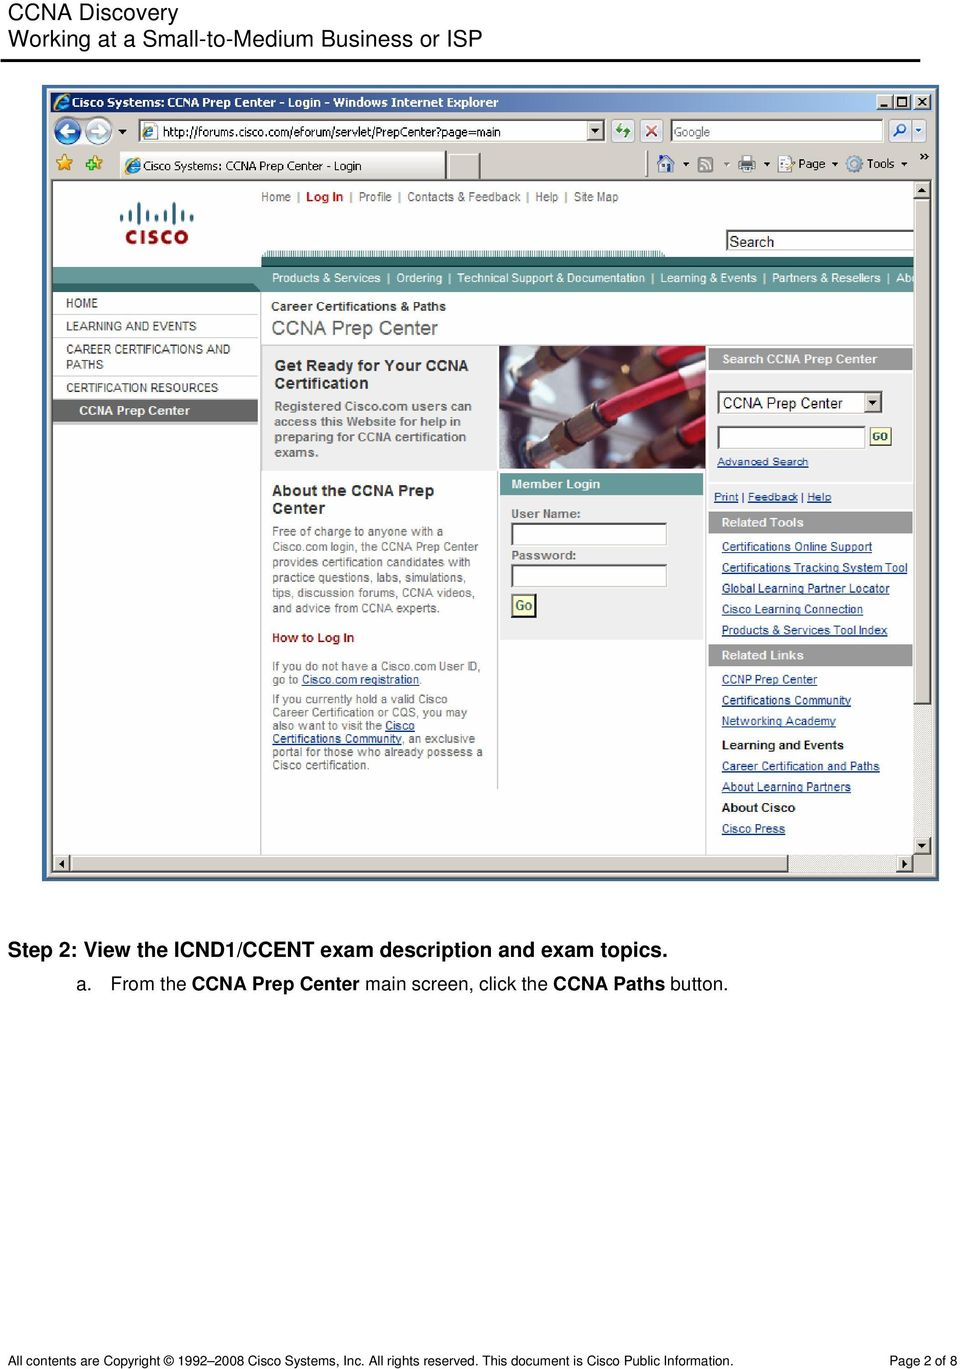 From the CCNA Prep Center main screen, click the CCNA Paths button.